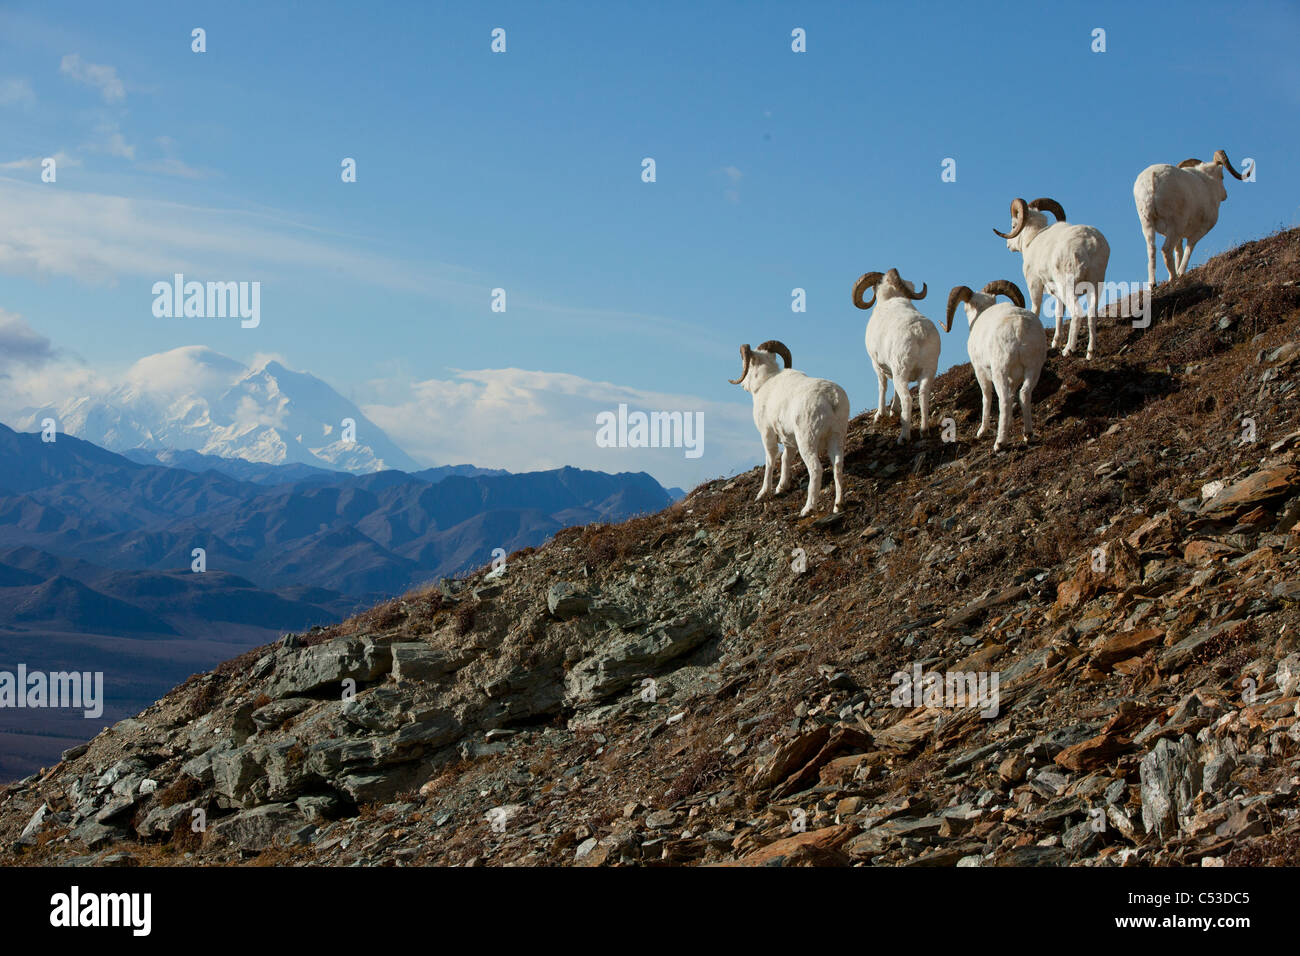 A band of Dall sheep rams stand on a rocky hillside and look towards Mt. McKinley in the background, Interior Alaska, - Stock Image